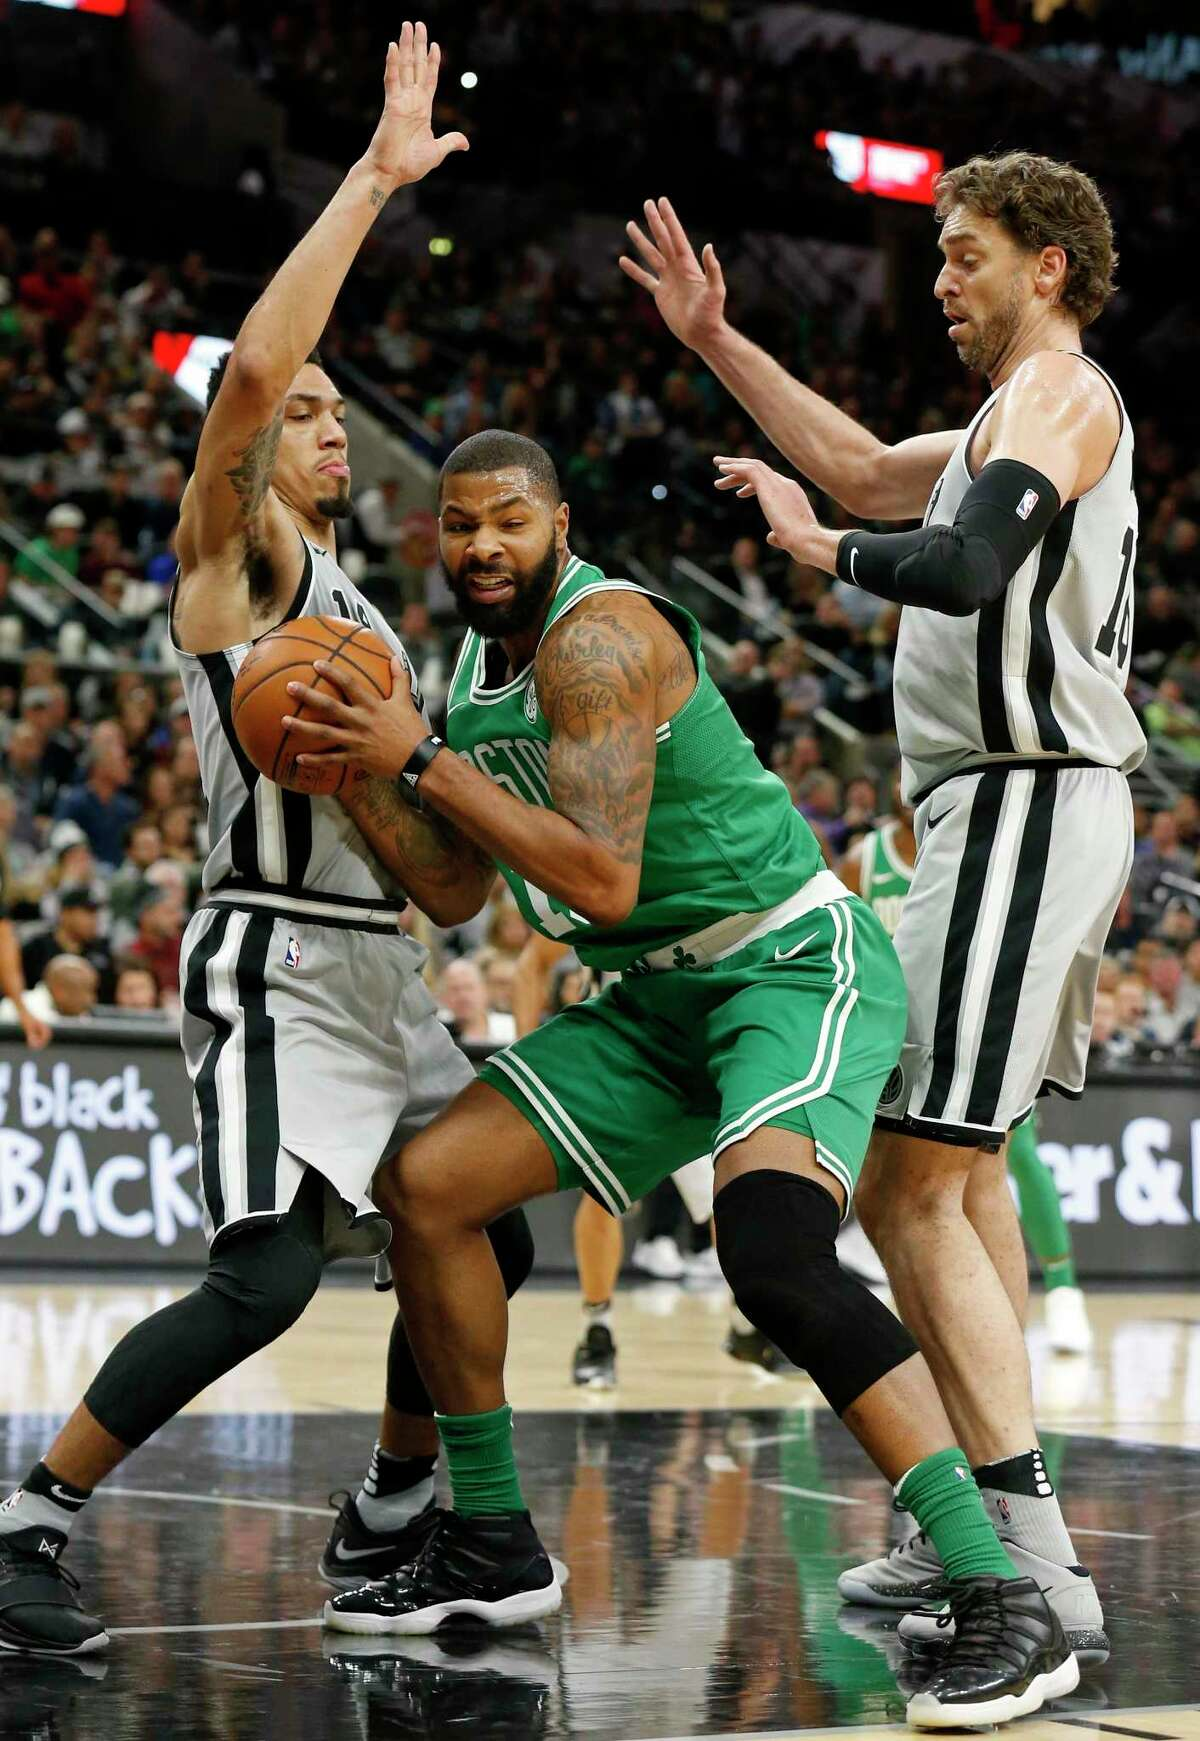 San Antonio Spurs guard Danny Green (14) and Pau Gasol (16) defend Boston Celtics forward Marcus Morris (13) during first half action Friday Dec. 8, 2017 at the AT&T Center.